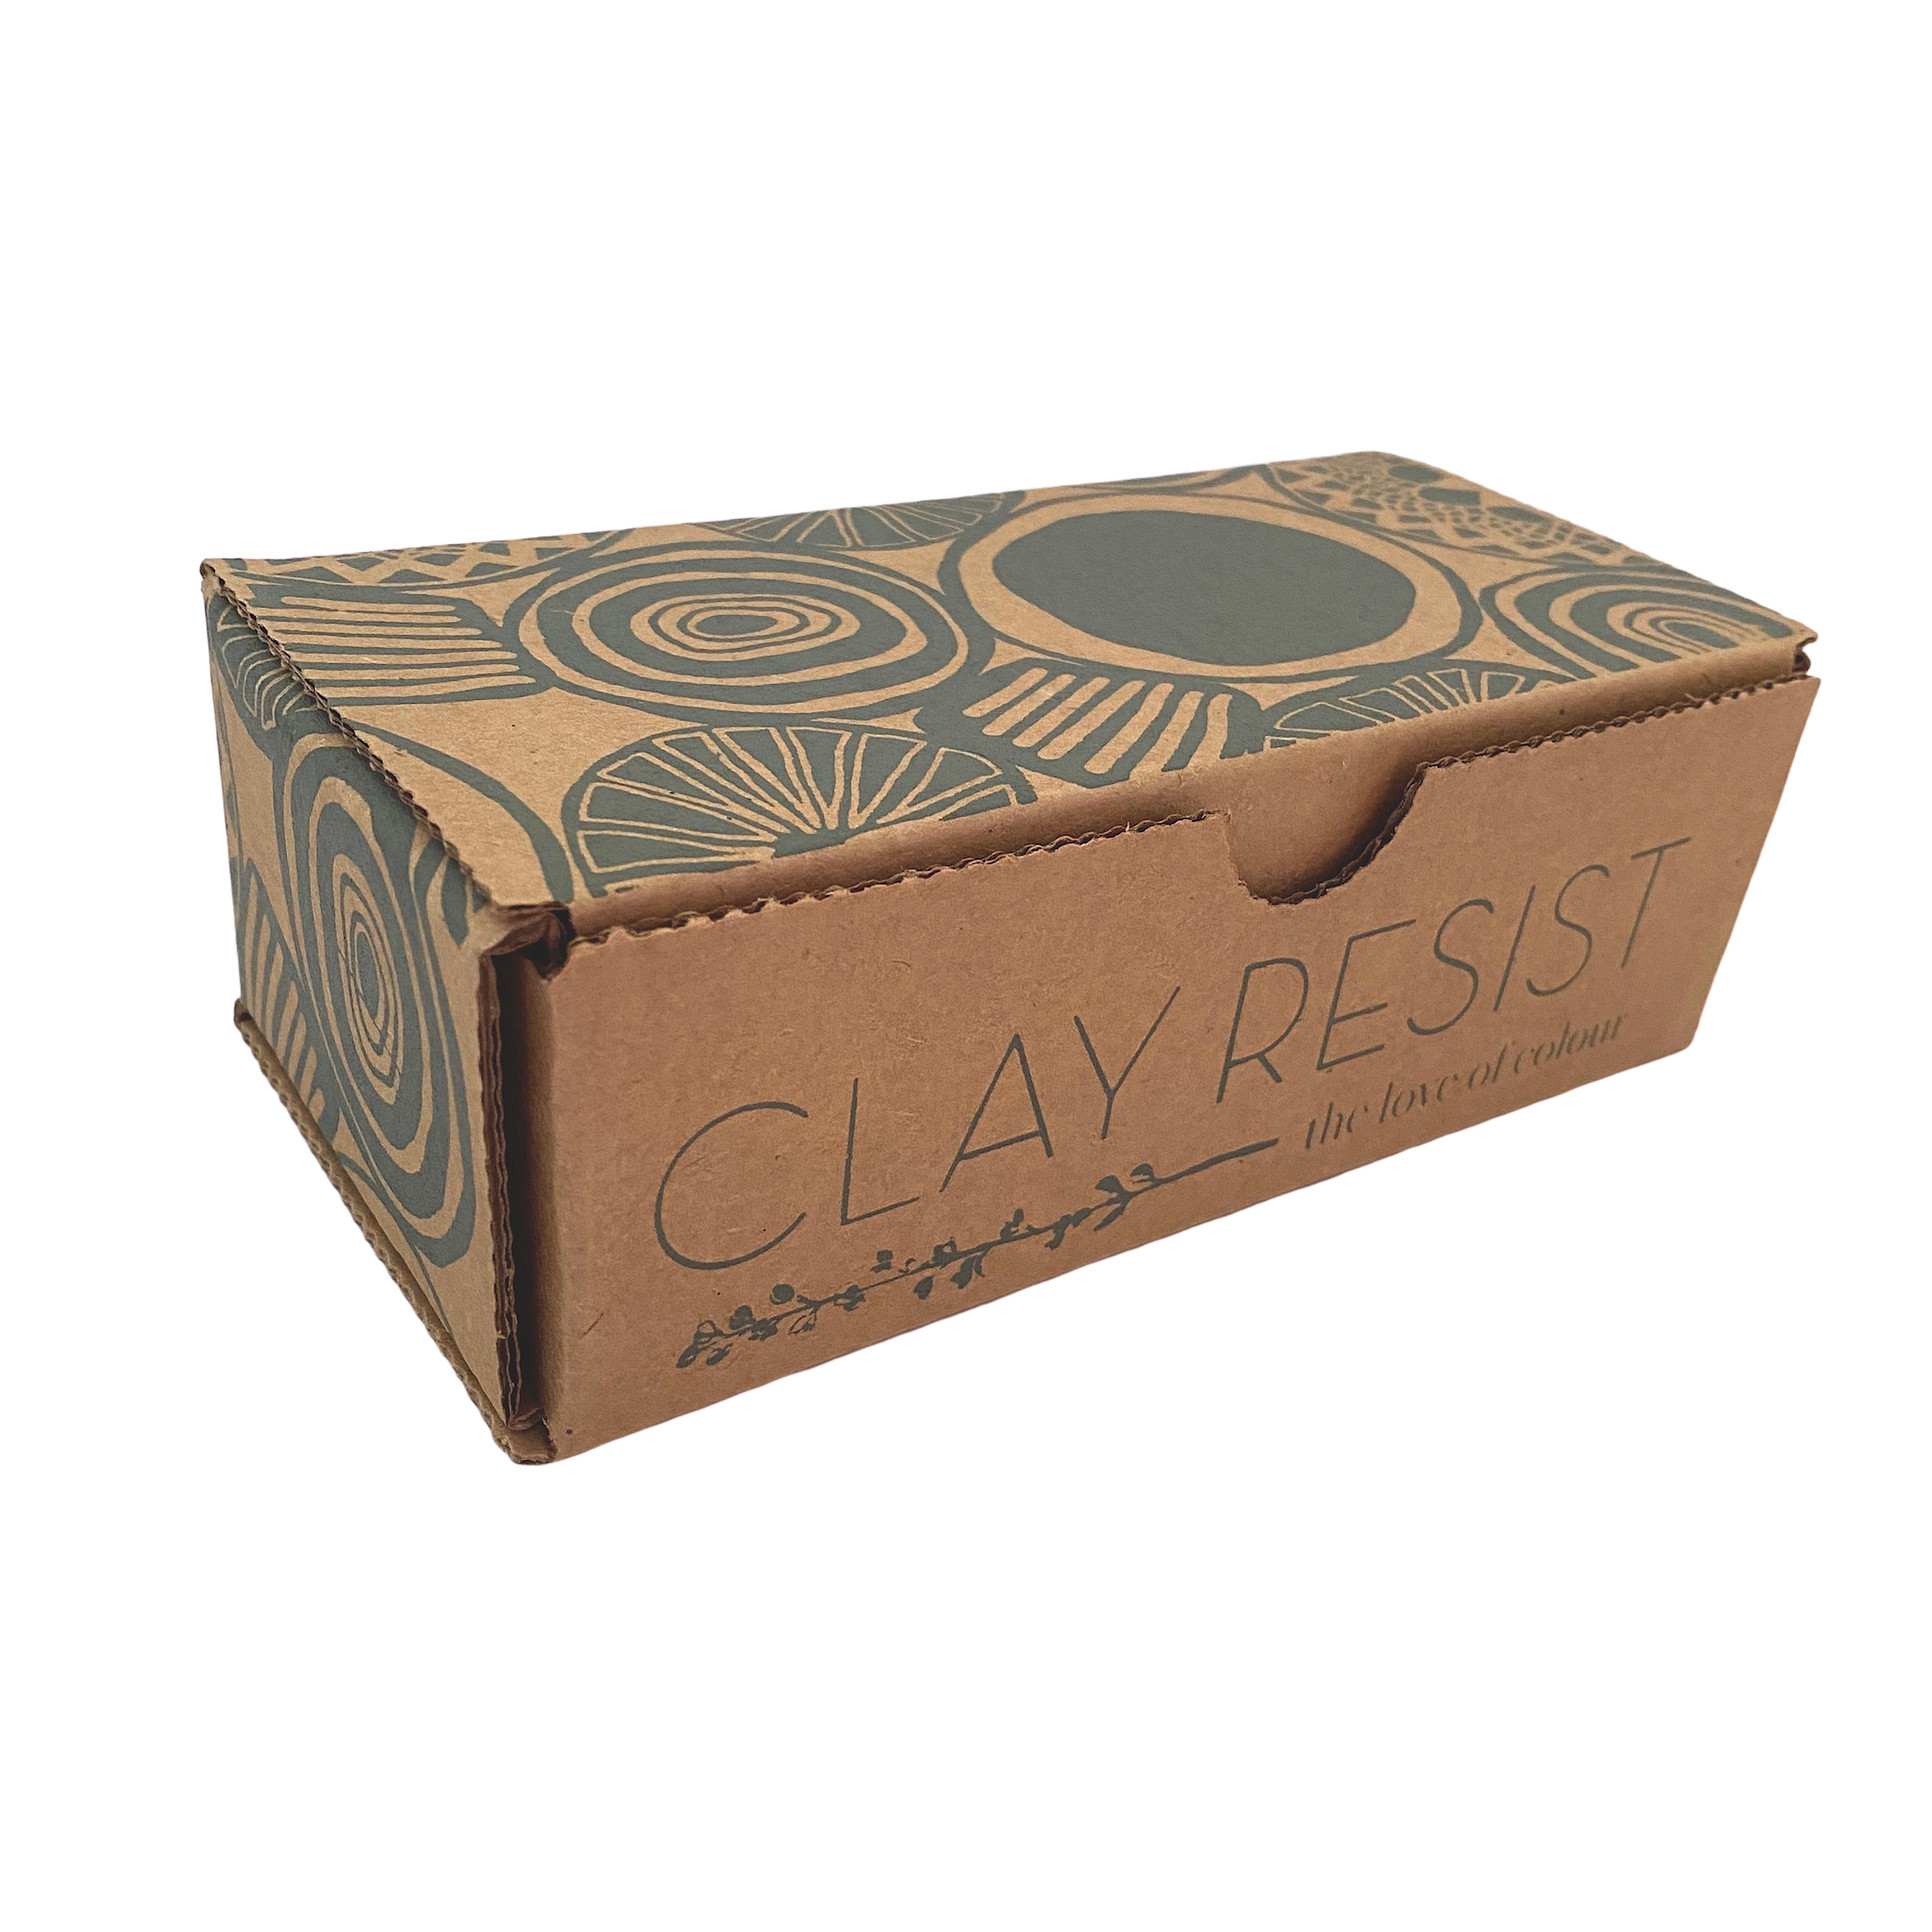 Cardboard box containing clay resist kit on white background. Box is printed with dark green circular motifs